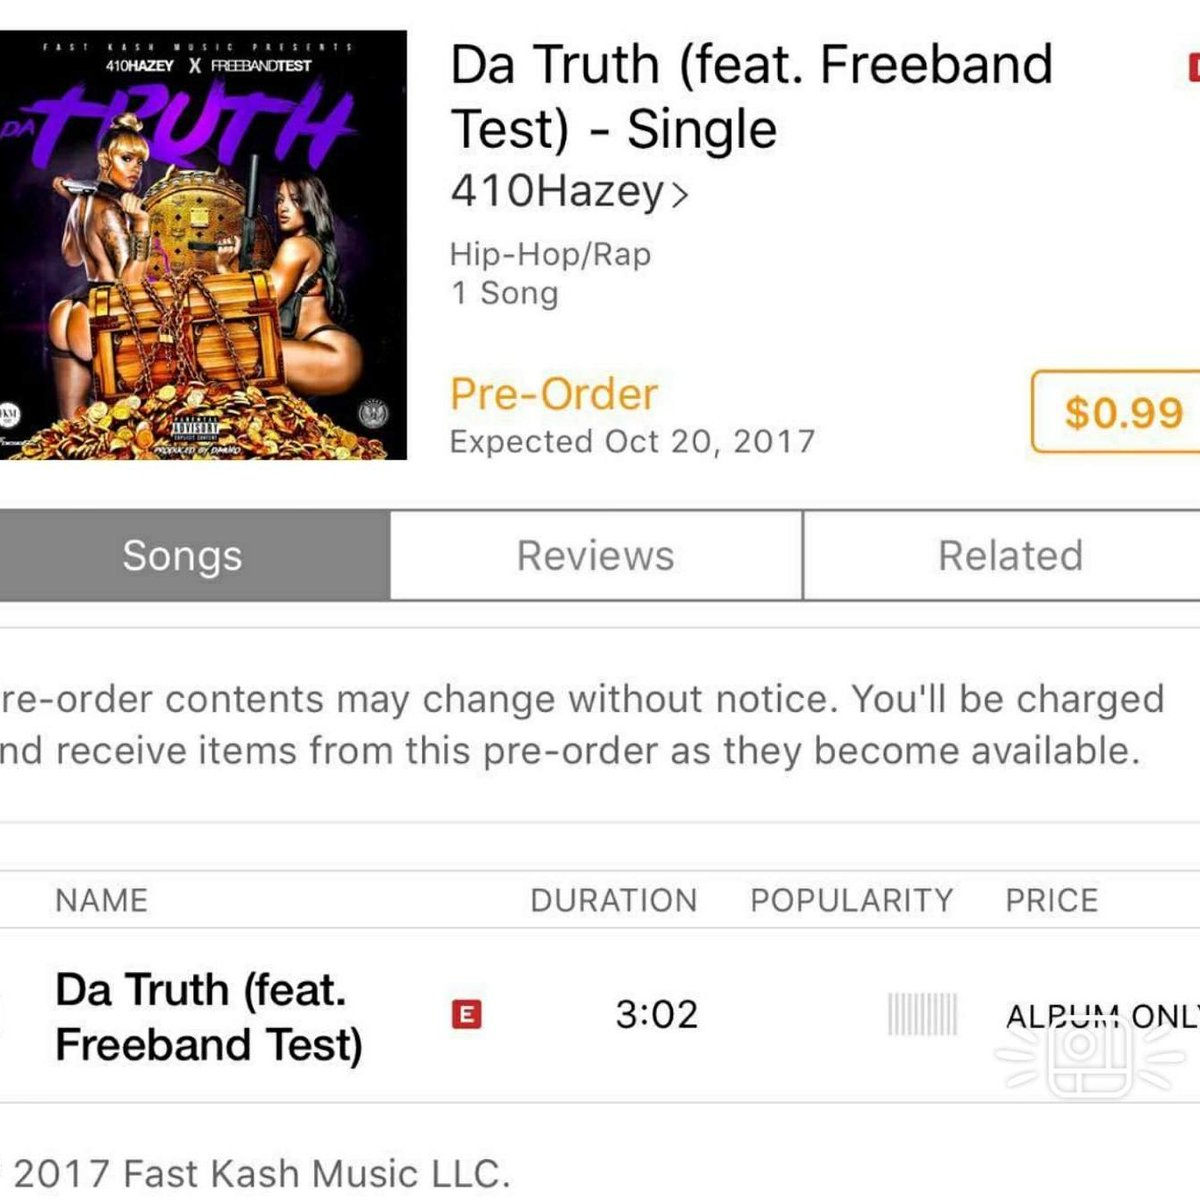 3 hours left to preorder. Be sure to grab a copy. @410Hazey @NoneRealAThanI @Yaggabandz @Dherbo_fkm #fkm #NewMusicFriday #music #hiphop <br>http://pic.twitter.com/VXhzeg6OpU